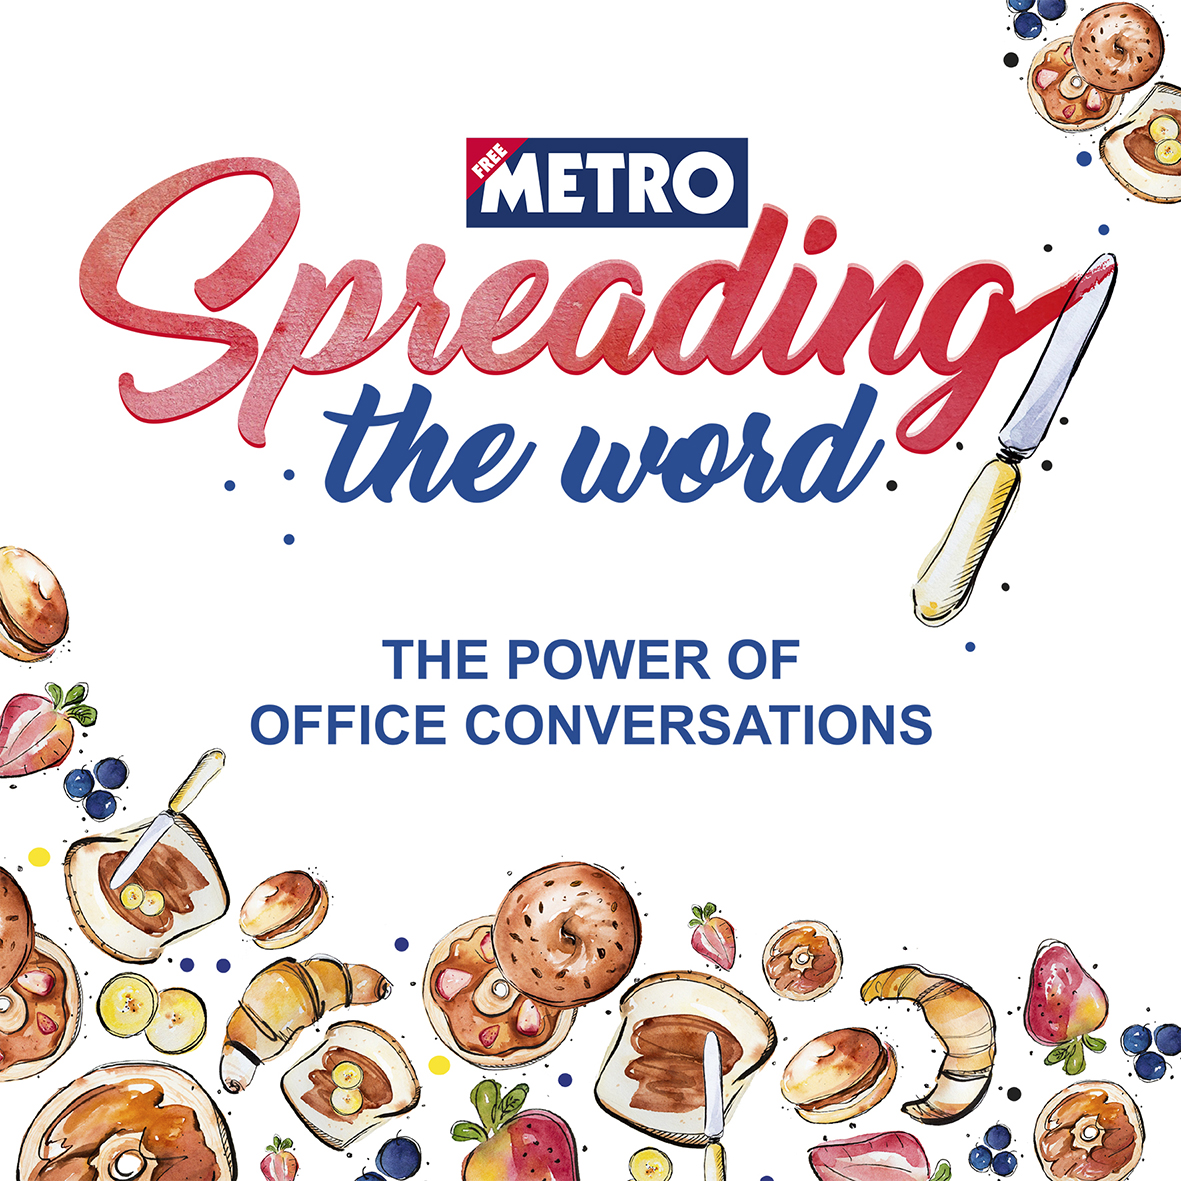 Metro Direct mail campaign